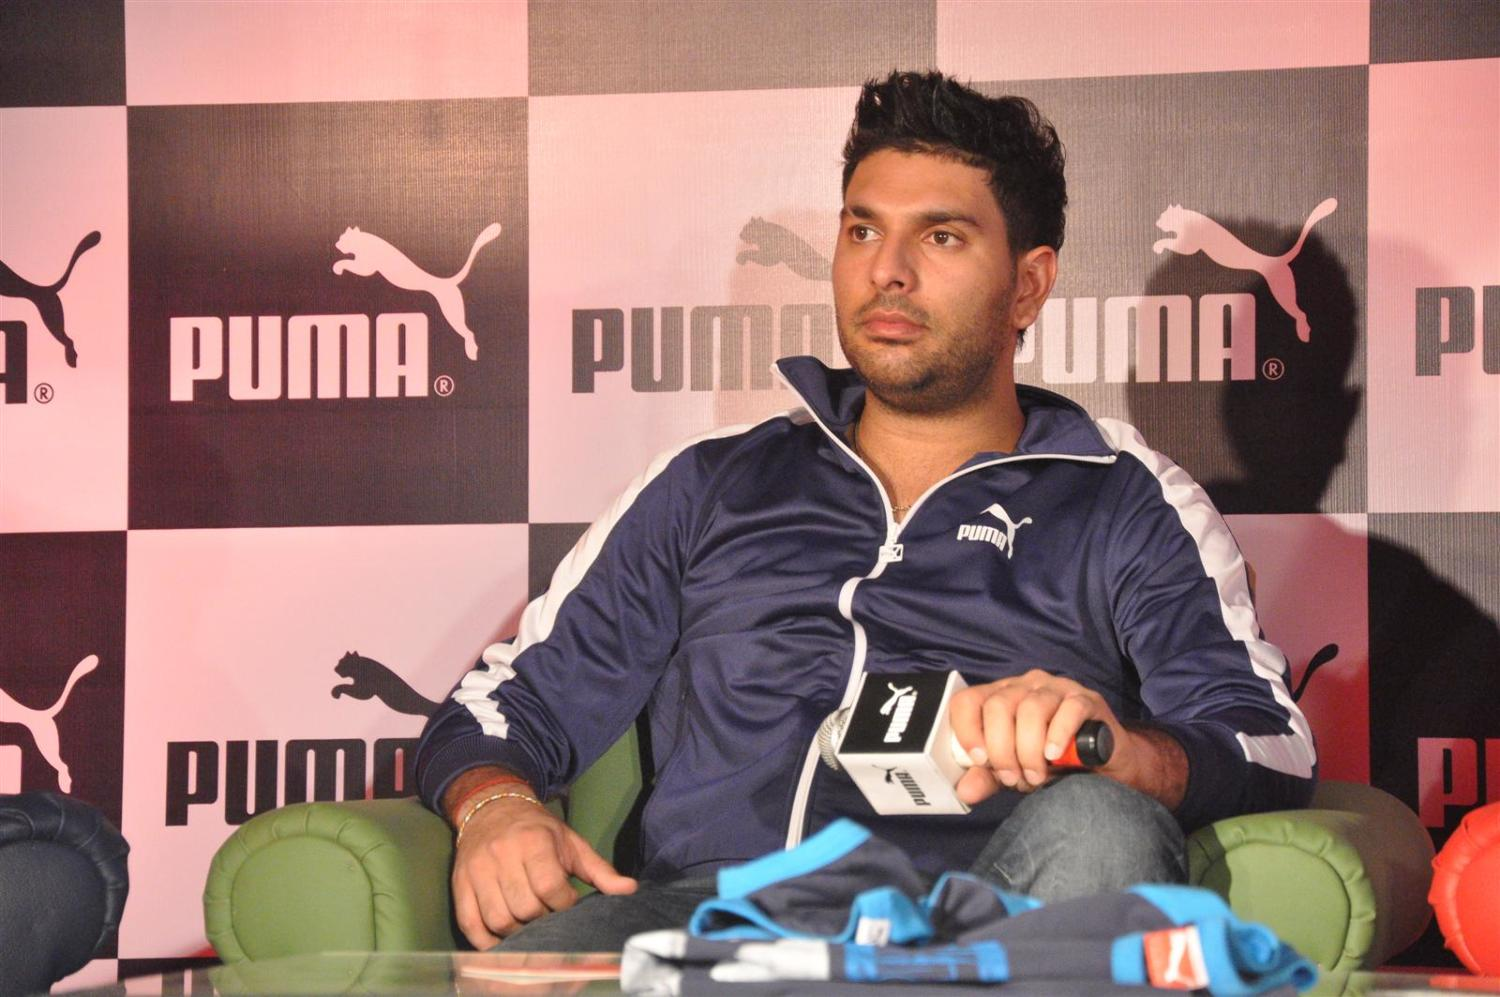 Indian cricket team player yuvraj singh at puma event announcing him